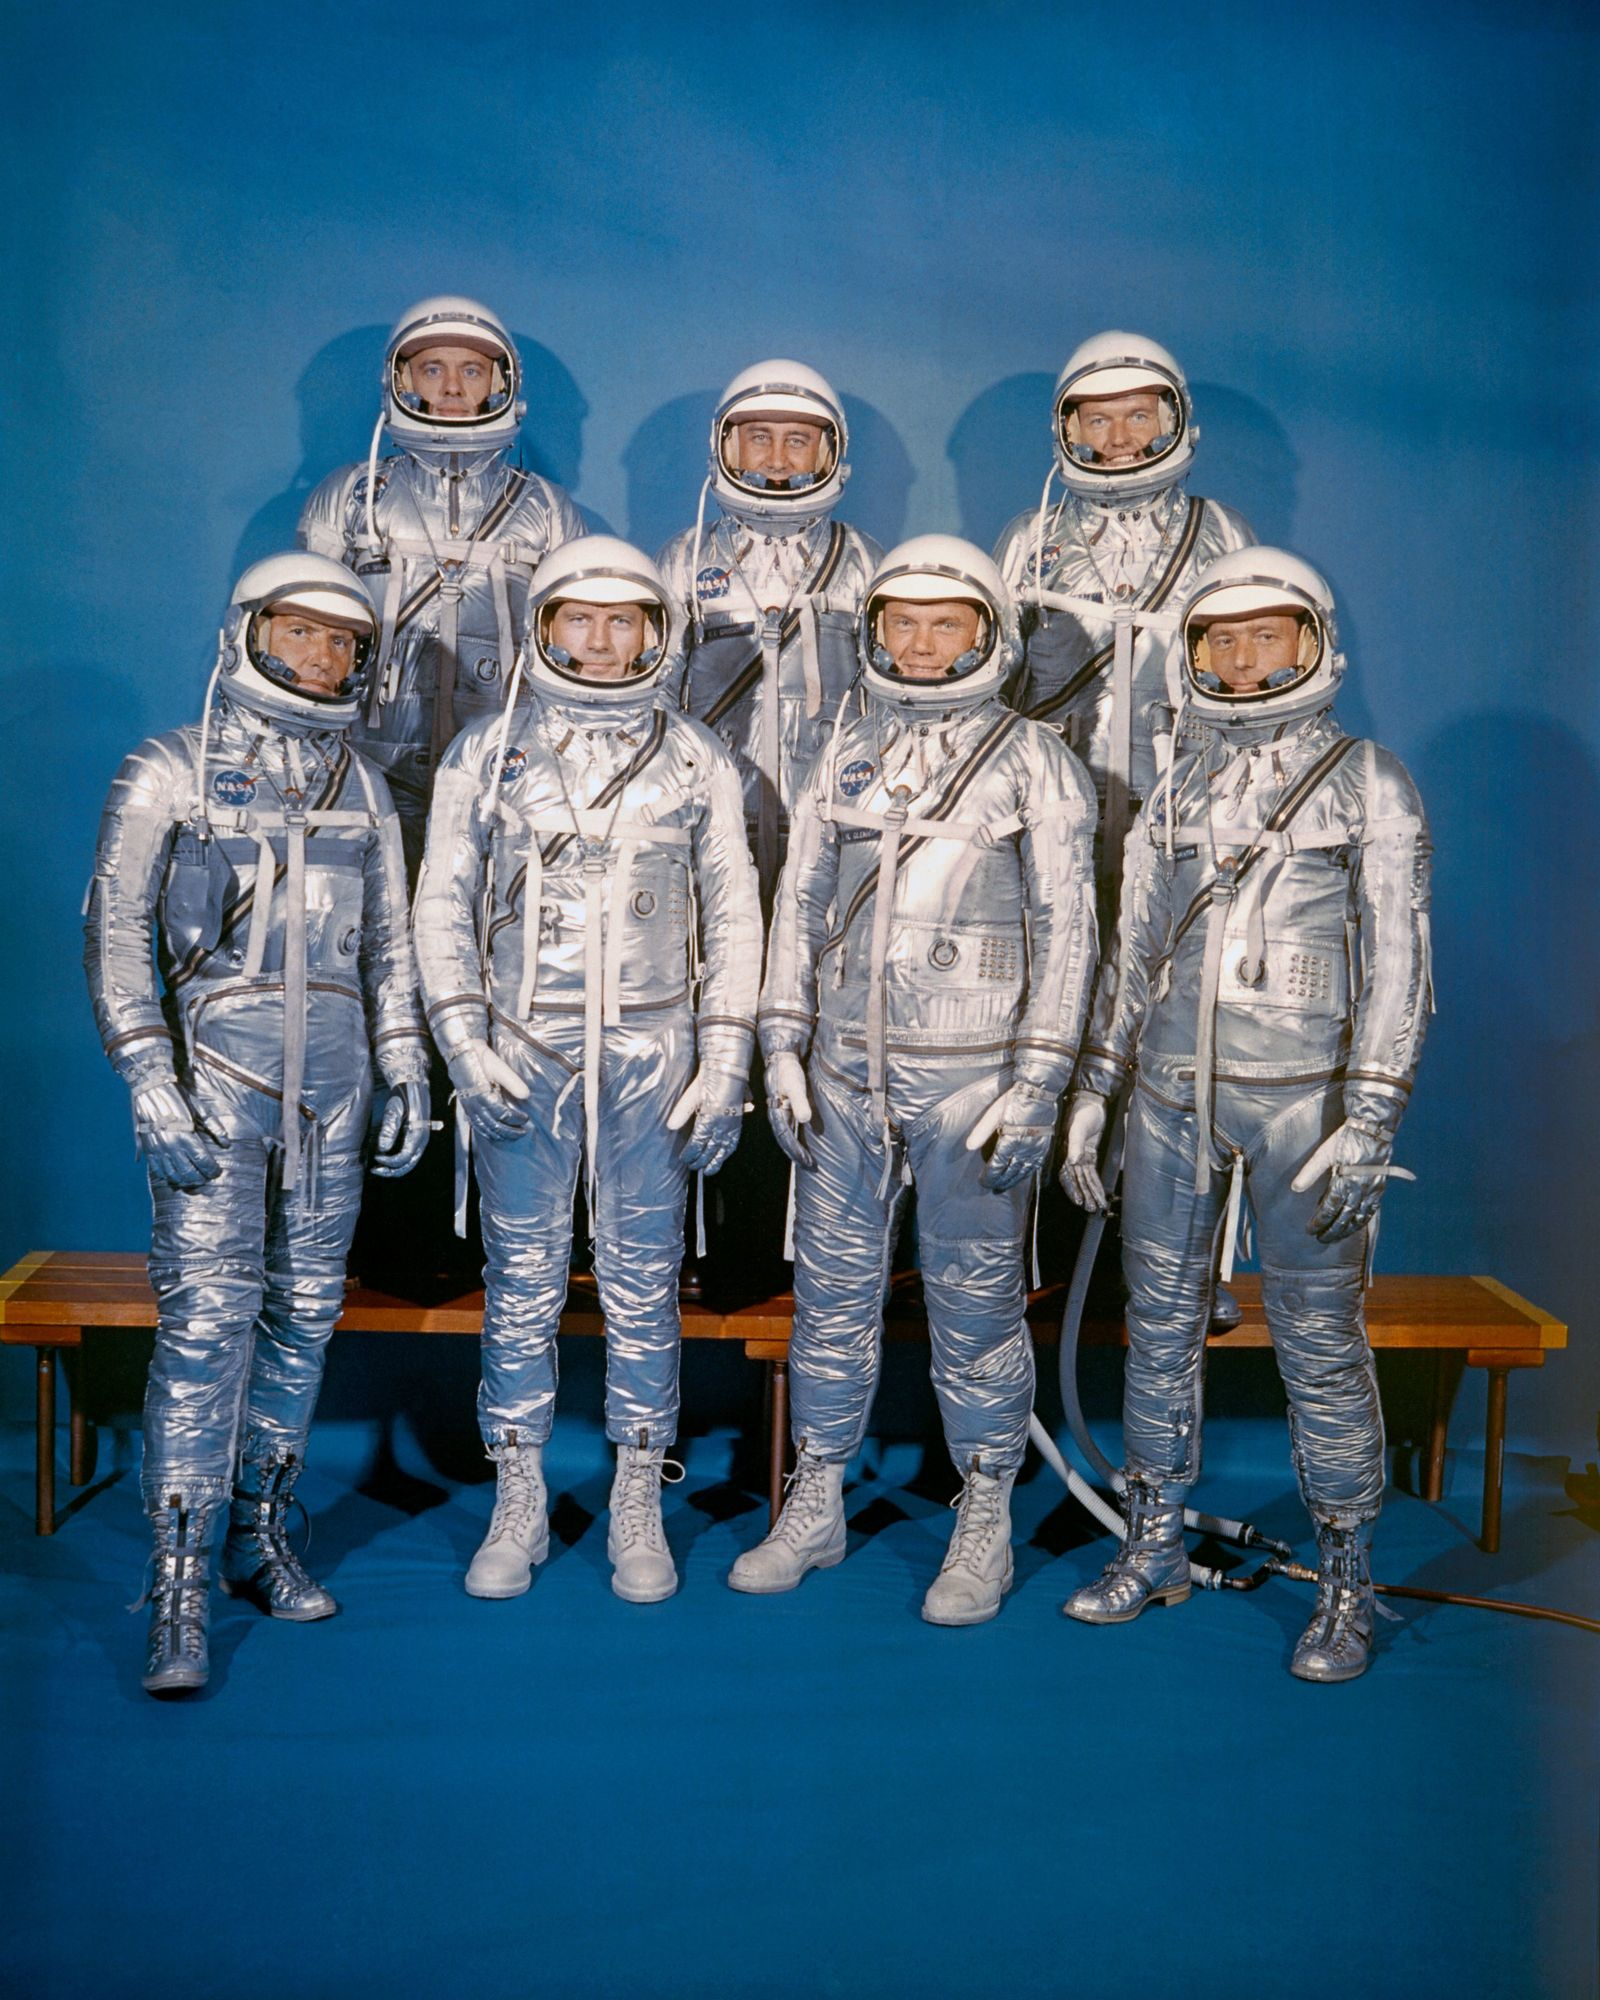 The Mercury 7 astronauts dressed in their 'Mercury suits.' Developed from high altitude U.S. Navy suits, the ...